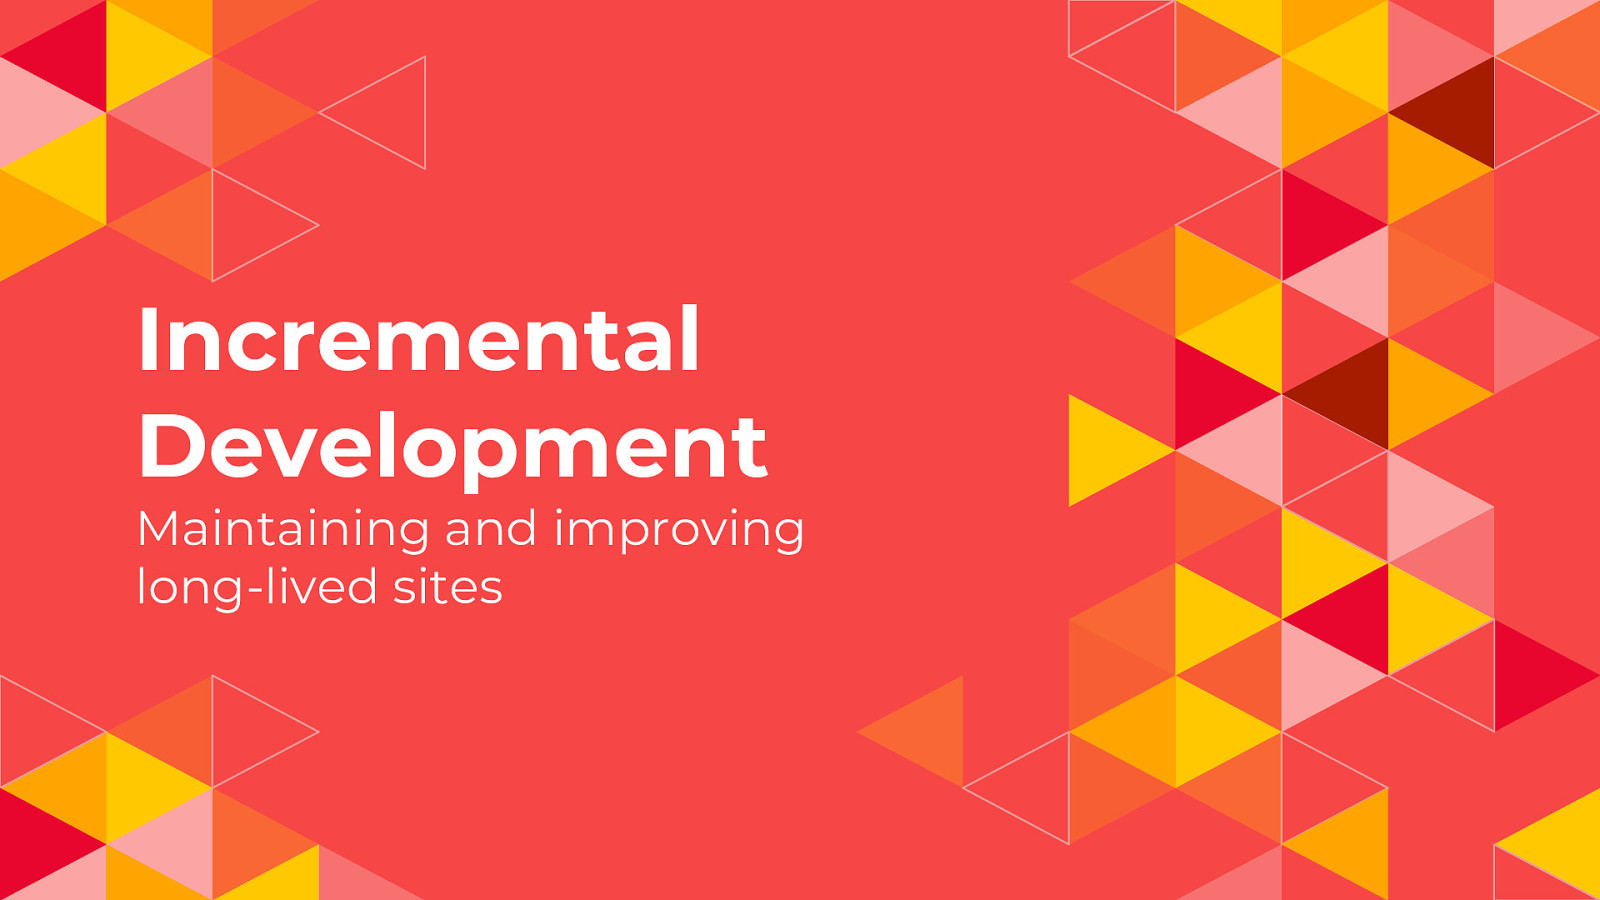 Incremental Development: Maintaining and improving long-lived site